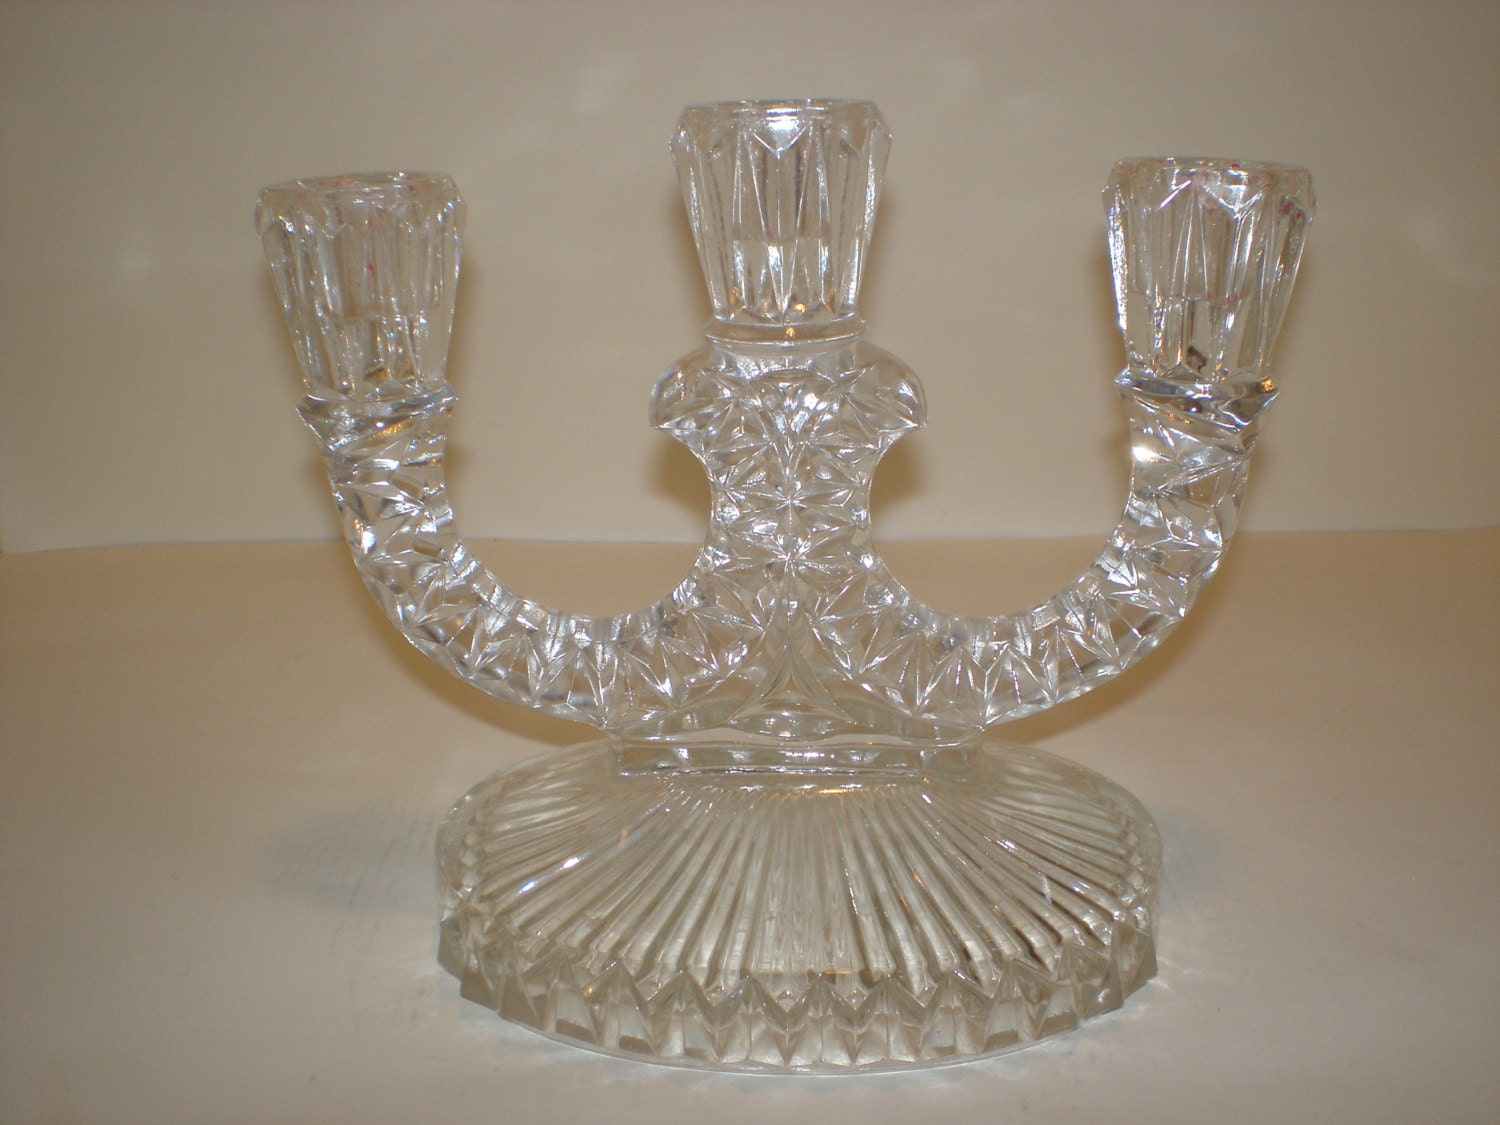 Vintage crystal candle holder home decor Crystal home decor